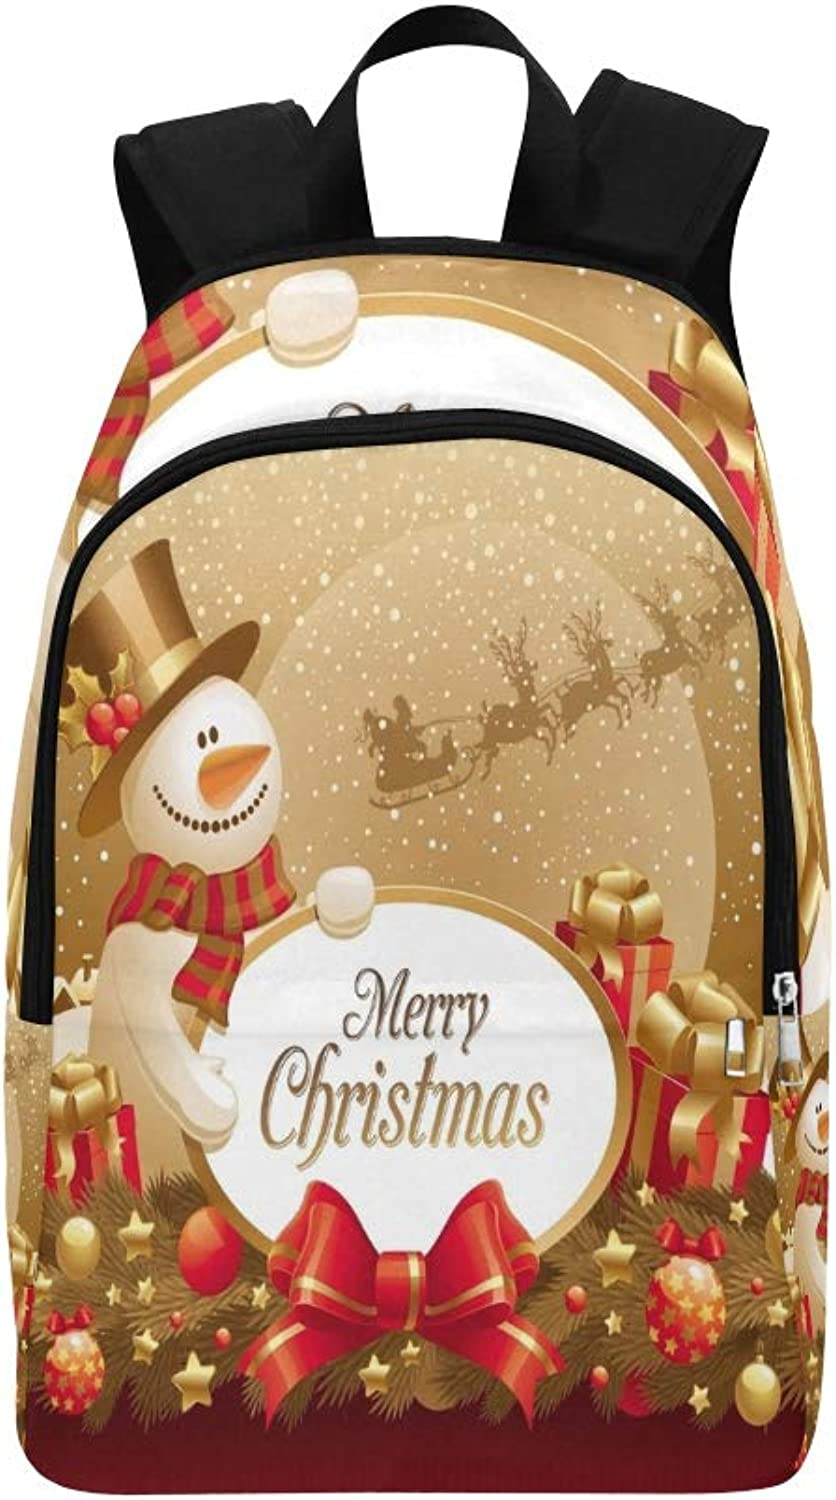 Christmas Snowman Gift Frame Casual Daypack Travel Bag College School Backpack for Mens and Women